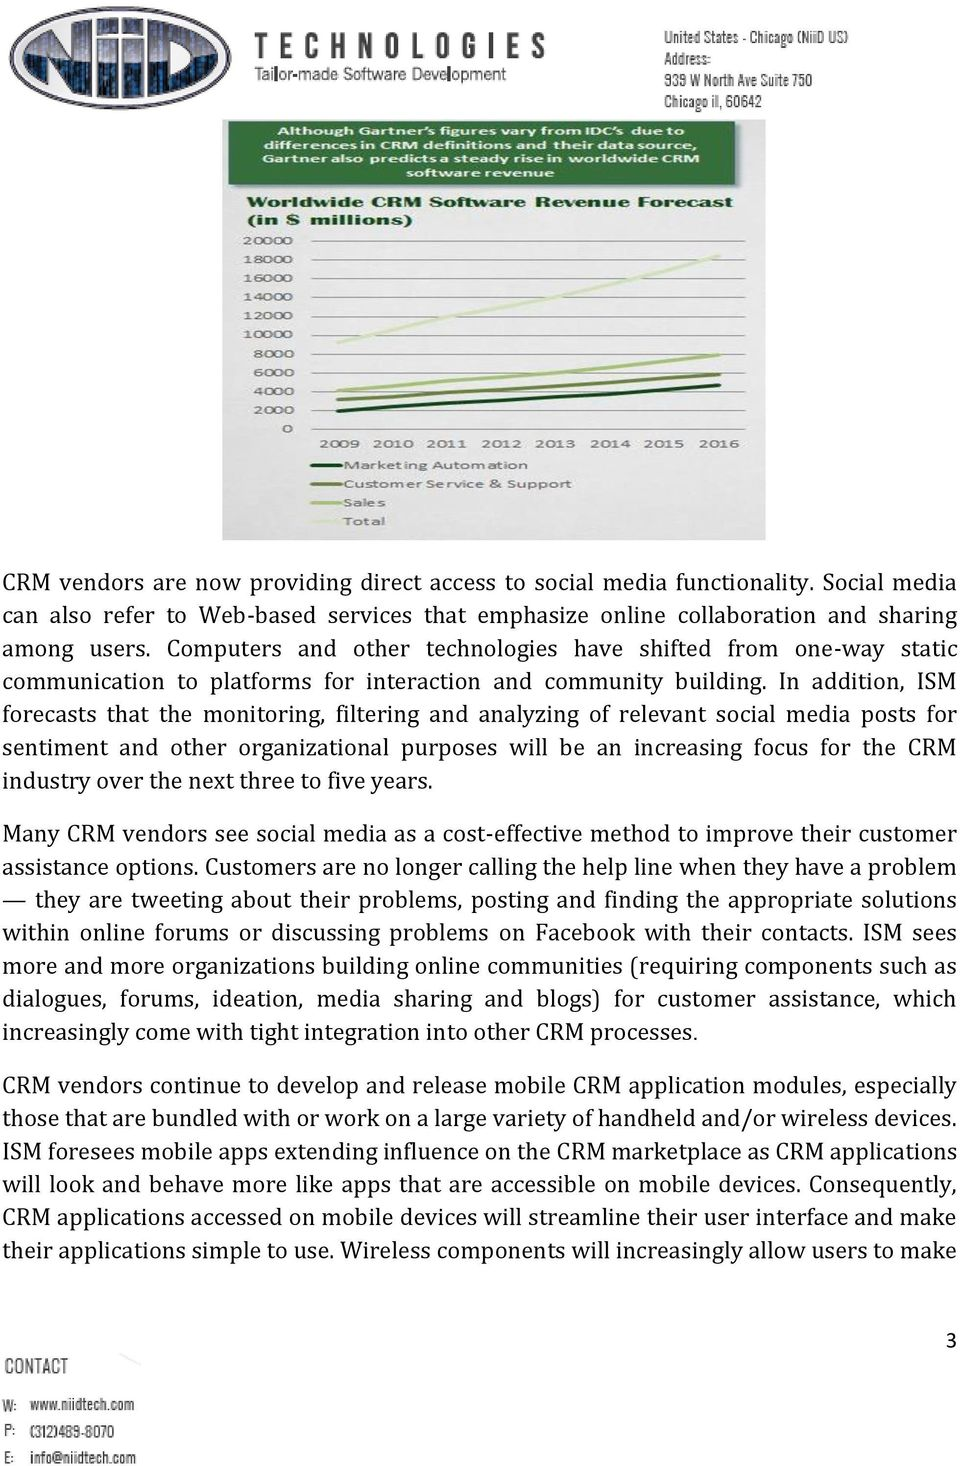 In addition, ISM forecasts that the monitoring, filtering and analyzing of relevant social media posts for sentiment and other organizational purposes will be an increasing focus for the CRM industry